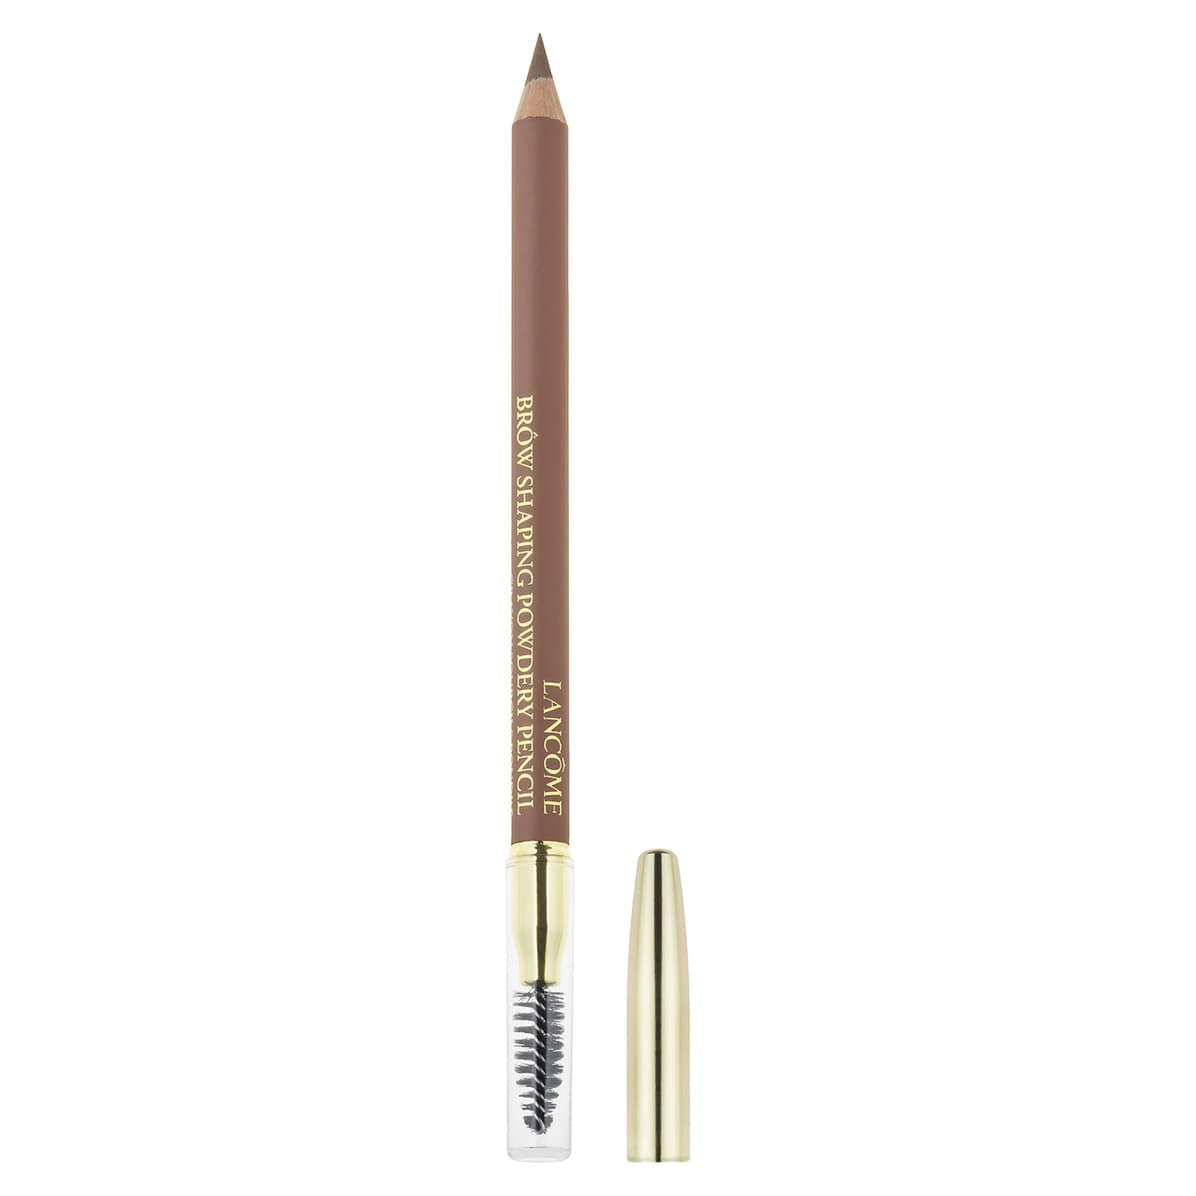 Lancome Brow Shaping Powdery Pencil Dark Blonde 02